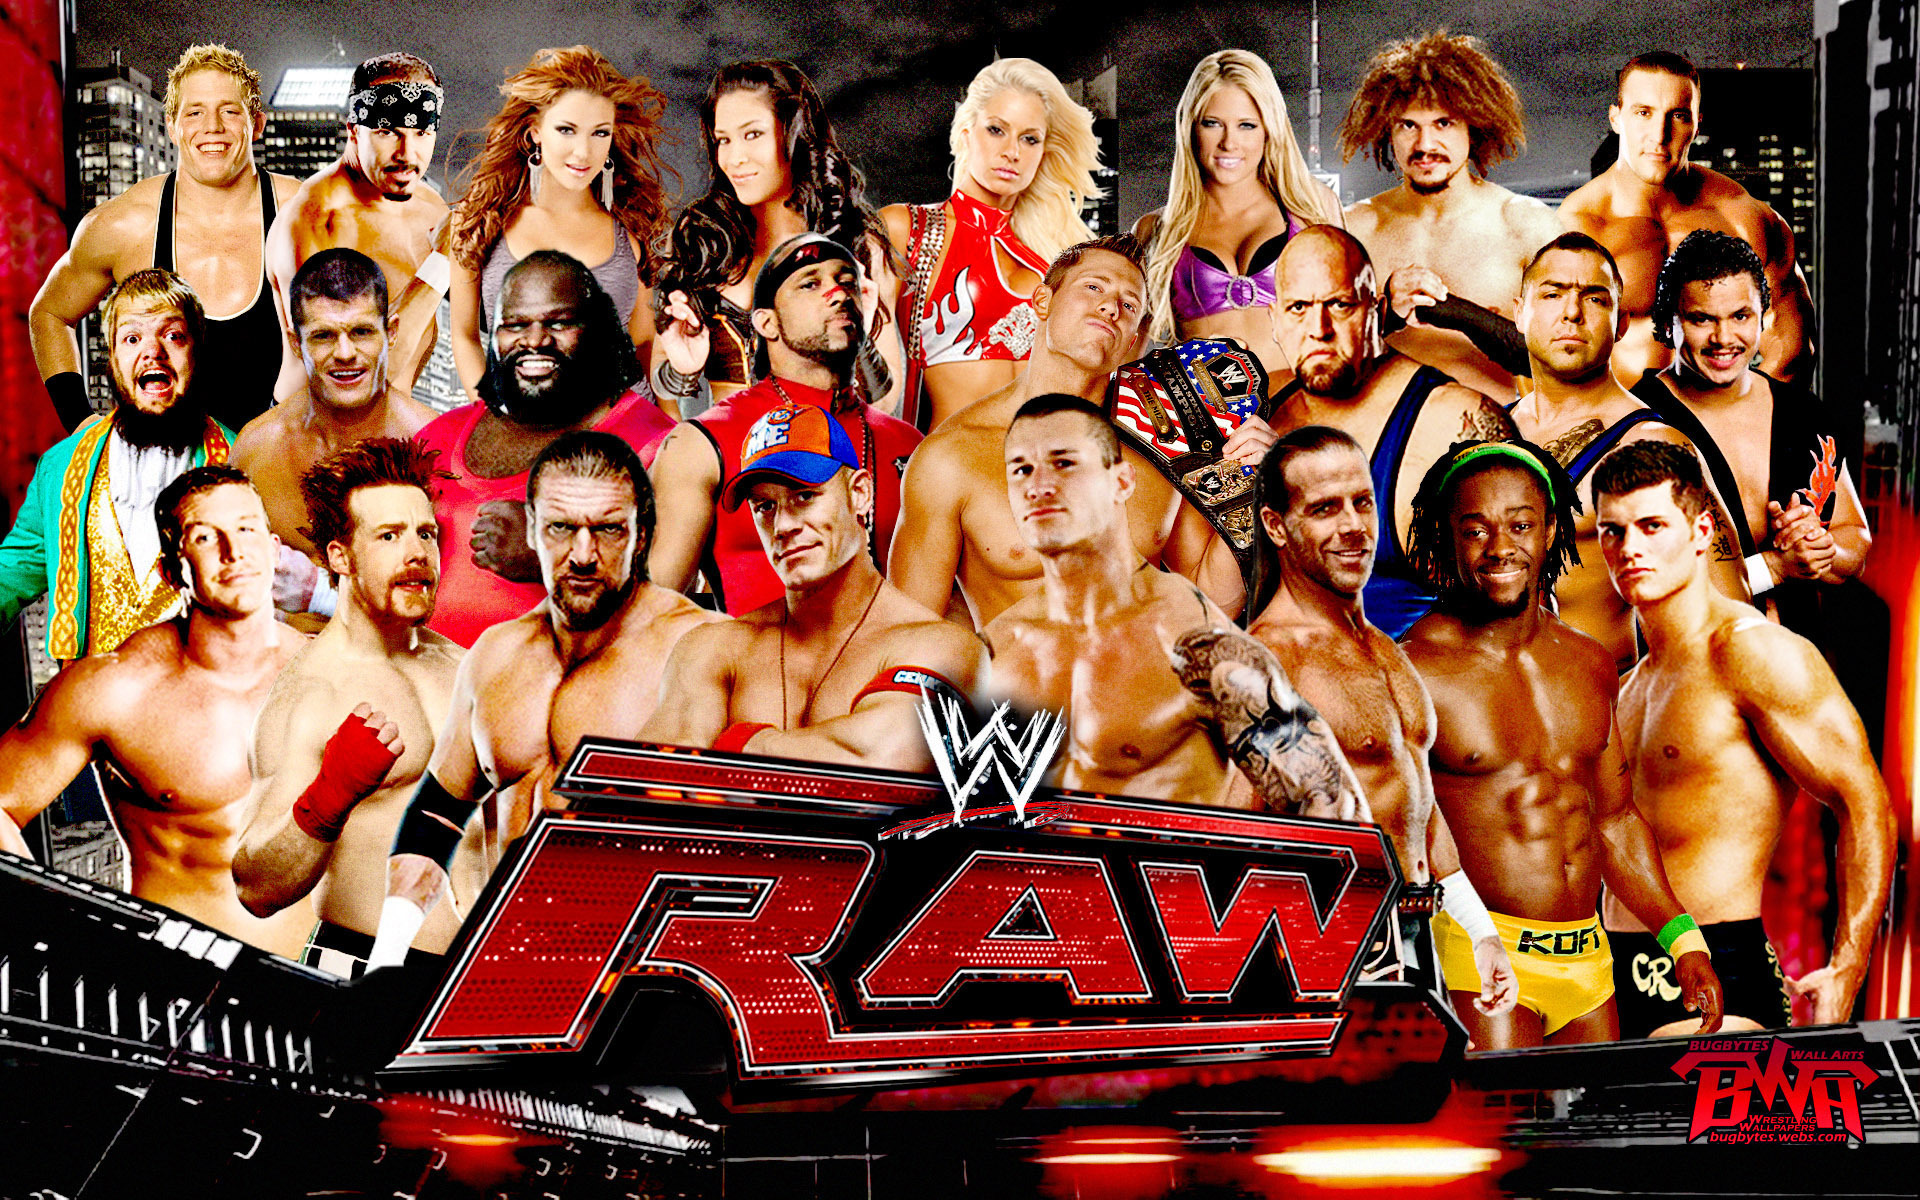 Wwe raw theme song movie theme songs tv soundtracks - Wwe divas wallpapers ...